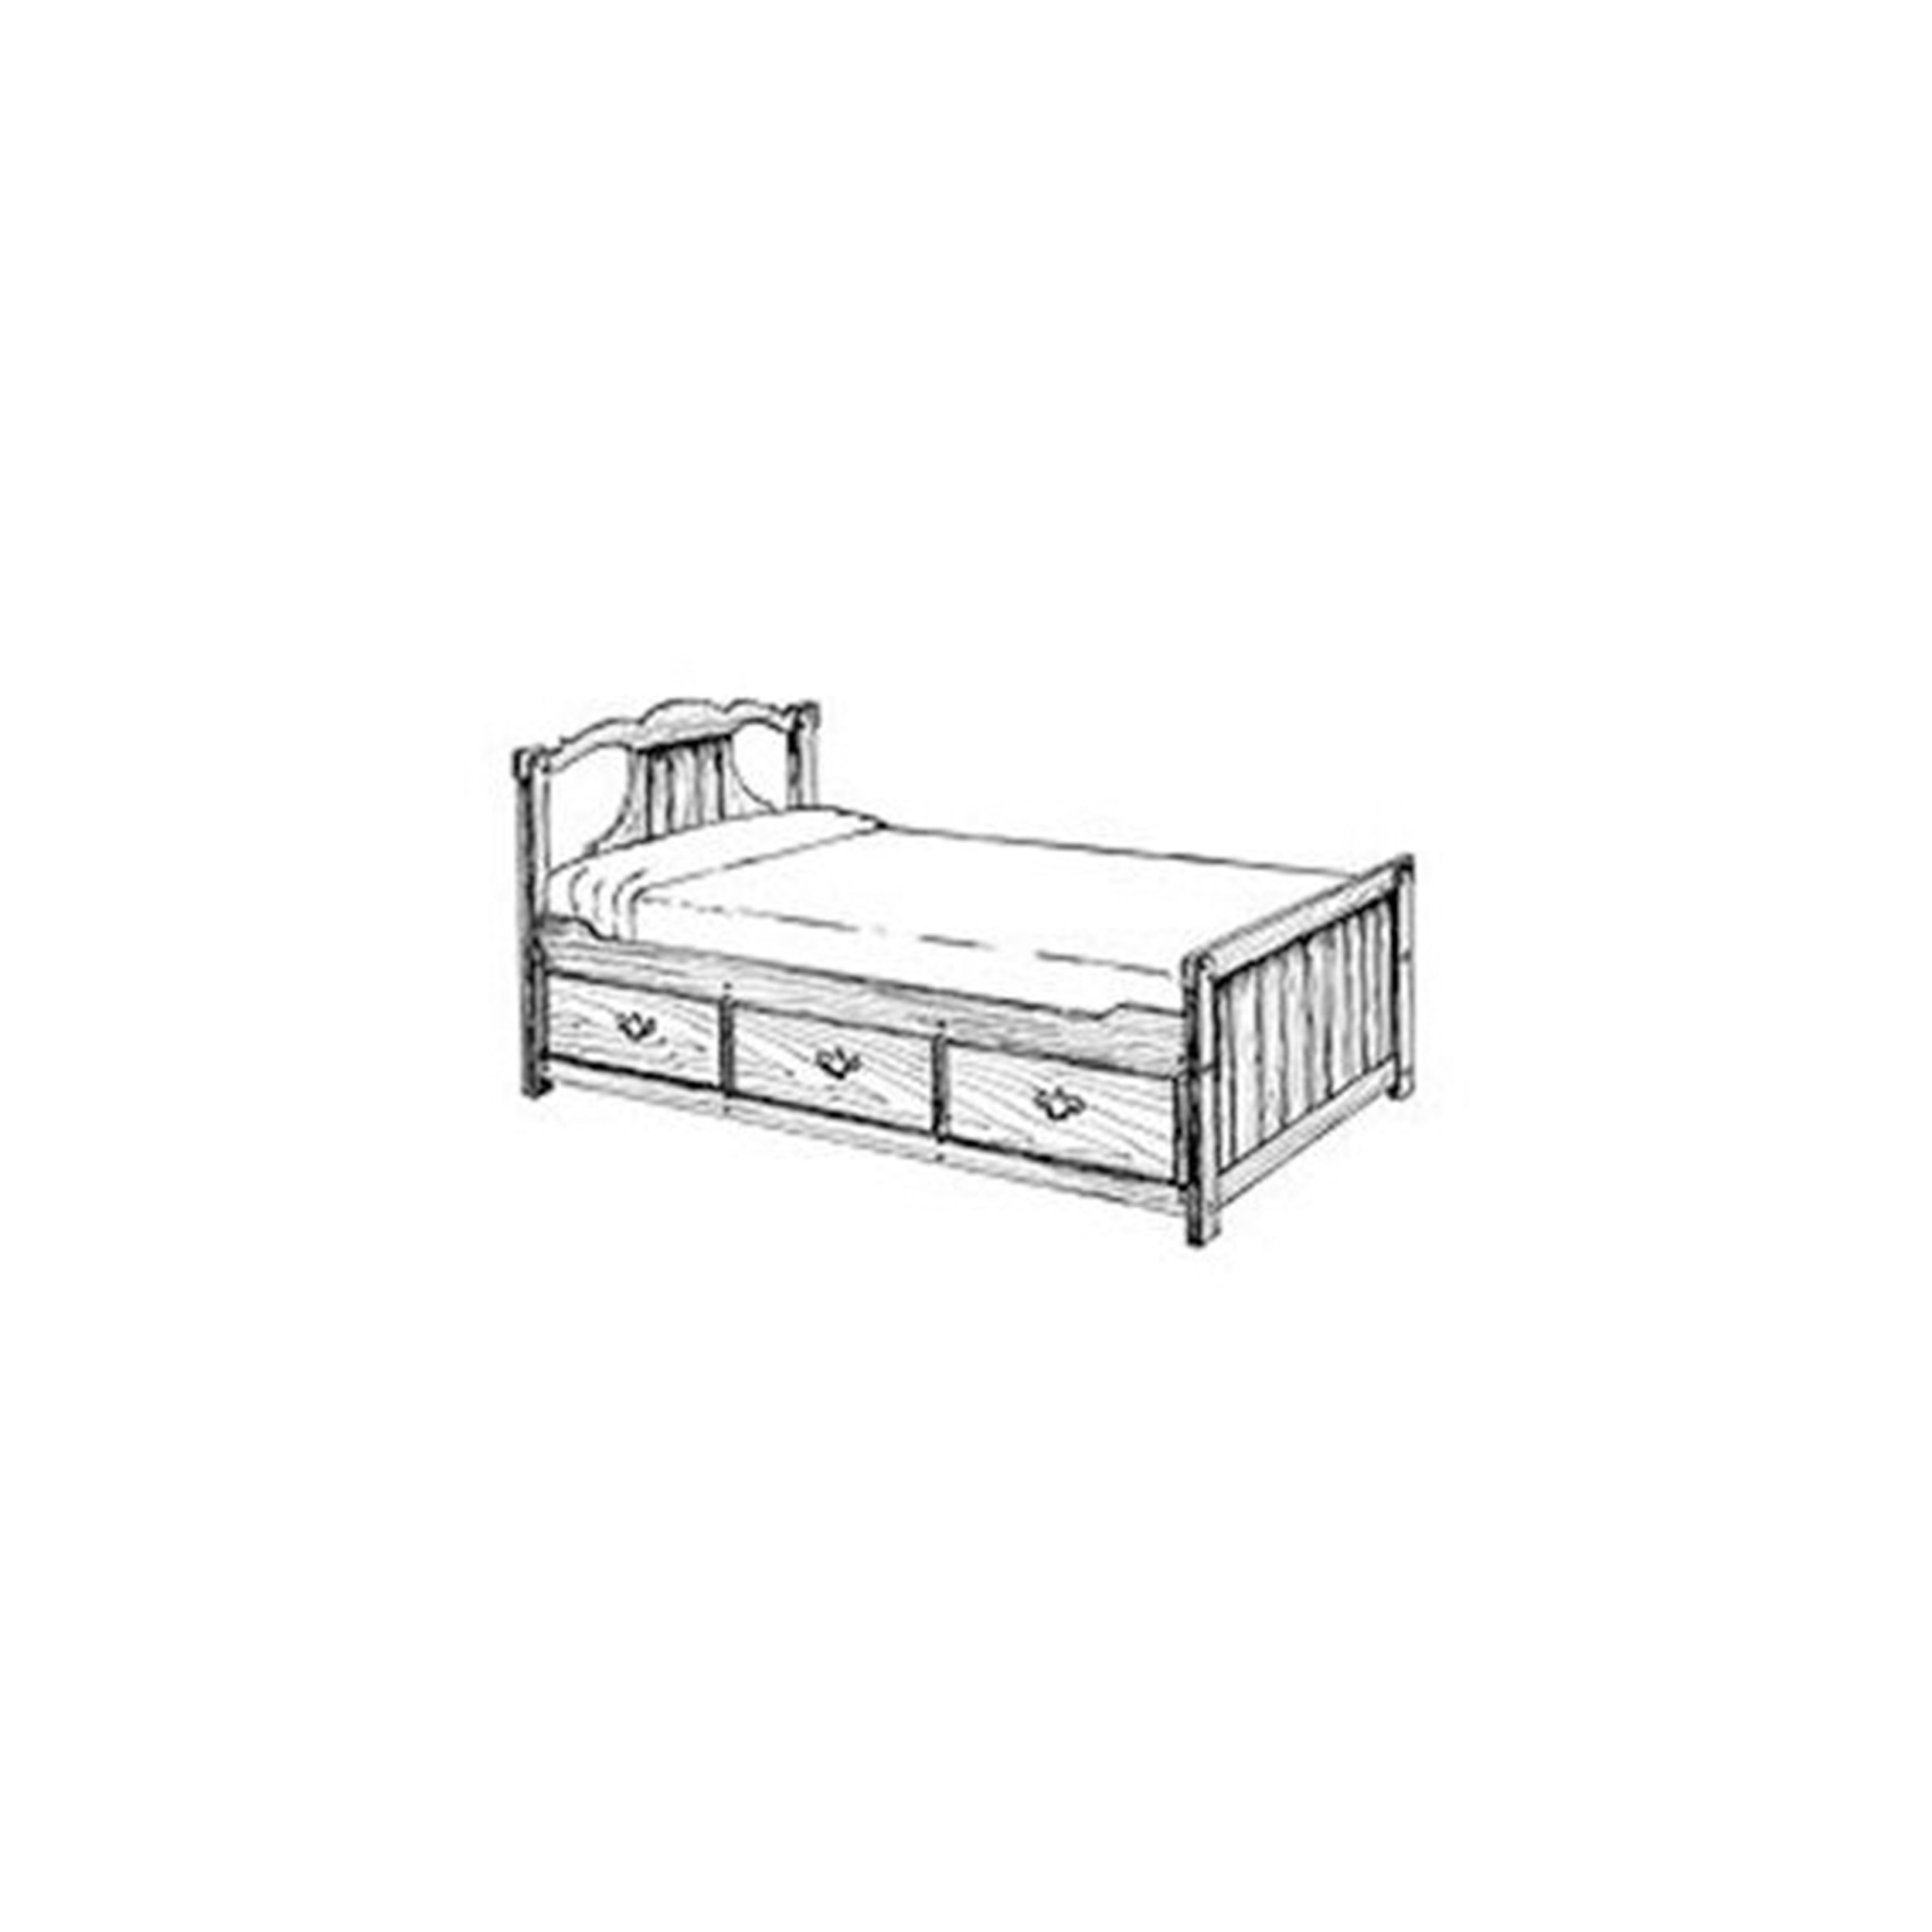 Woodworking Project Paper Plan to Build Captain's Bed